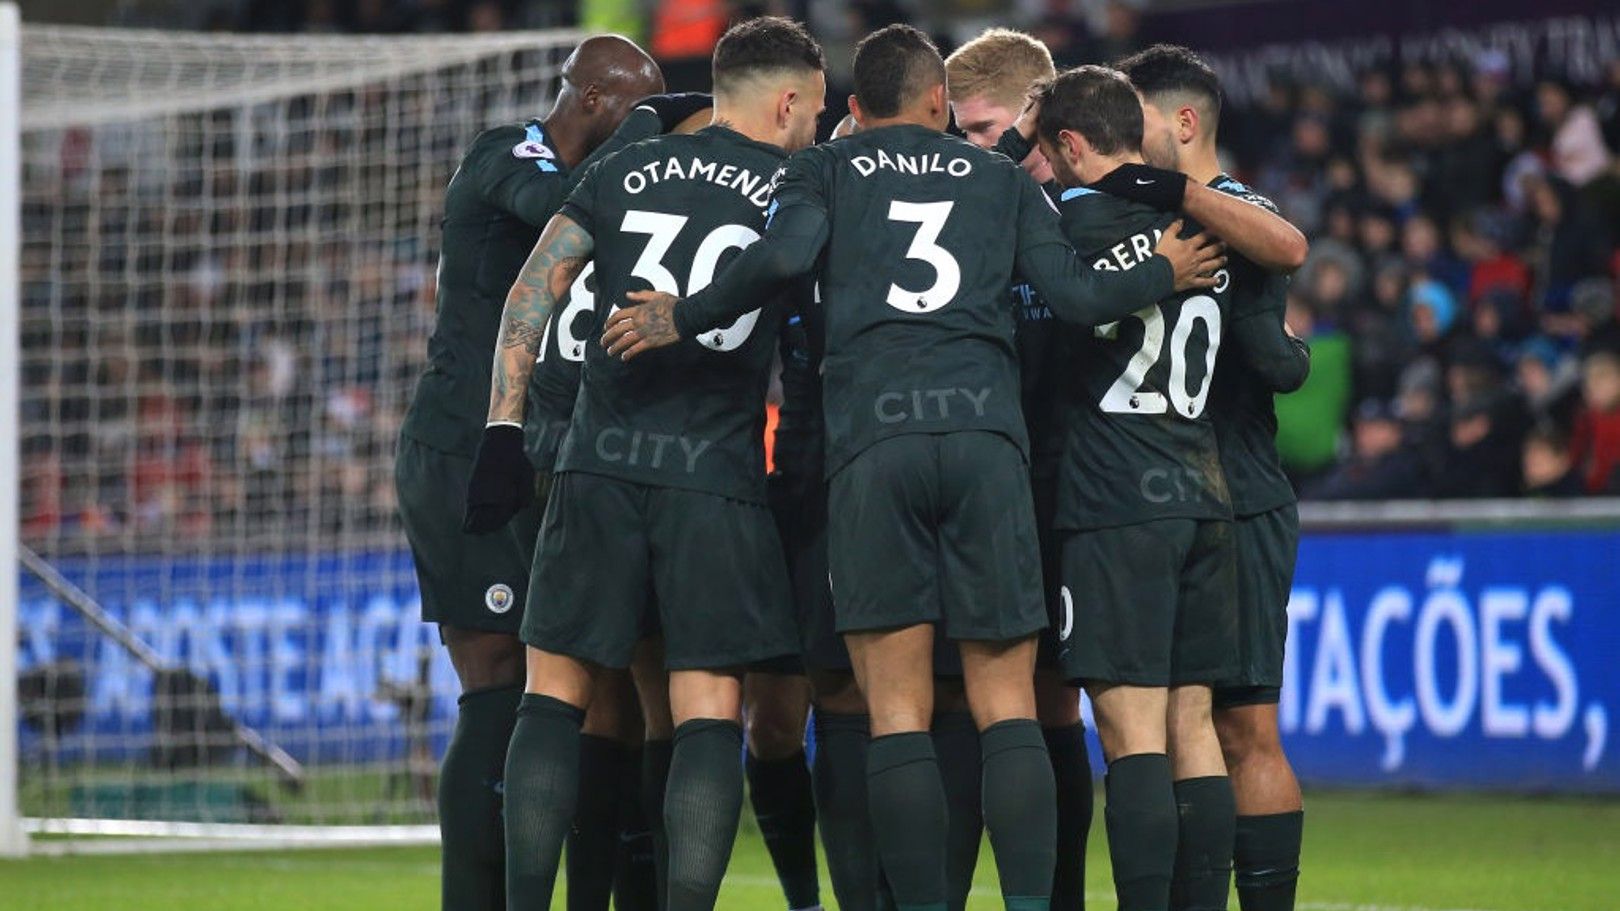 TOGETHER: A record-breaking, outstanding display as City make history with a 4-0 rout at Swansea